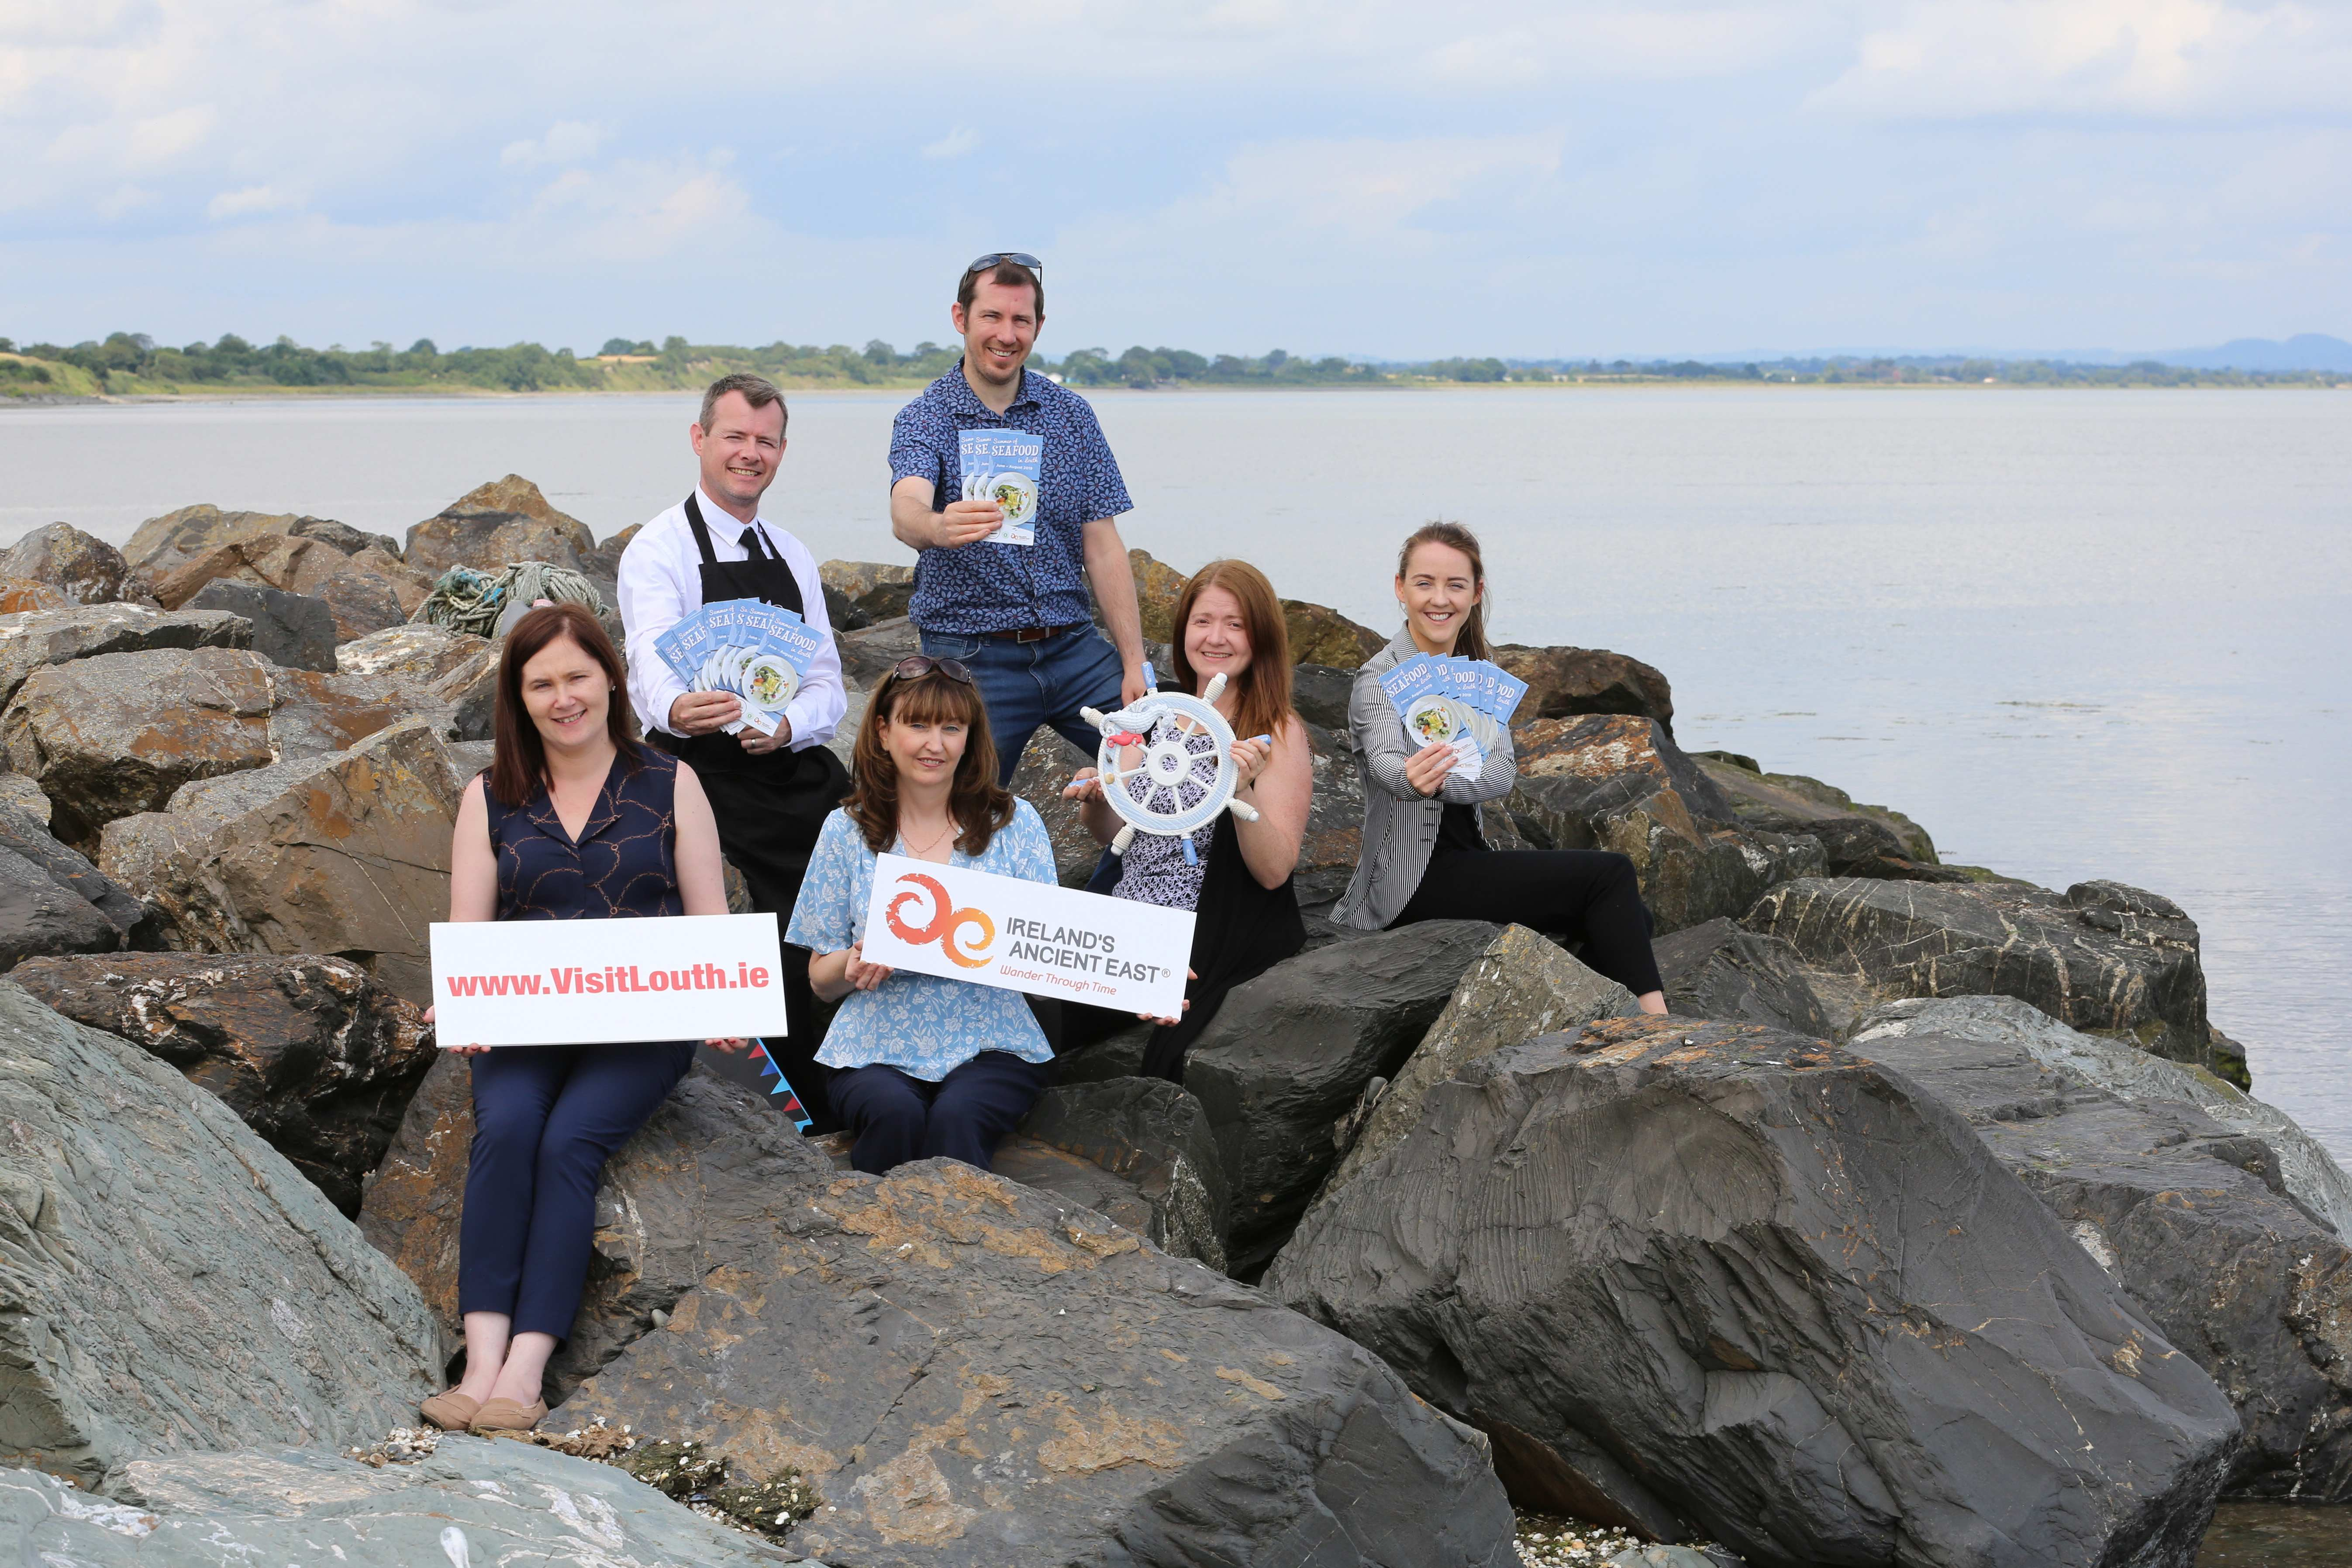 Summer of Seafood in Louth Brochure, Jenny Callanan Photography, Drogheda, Co.Louth